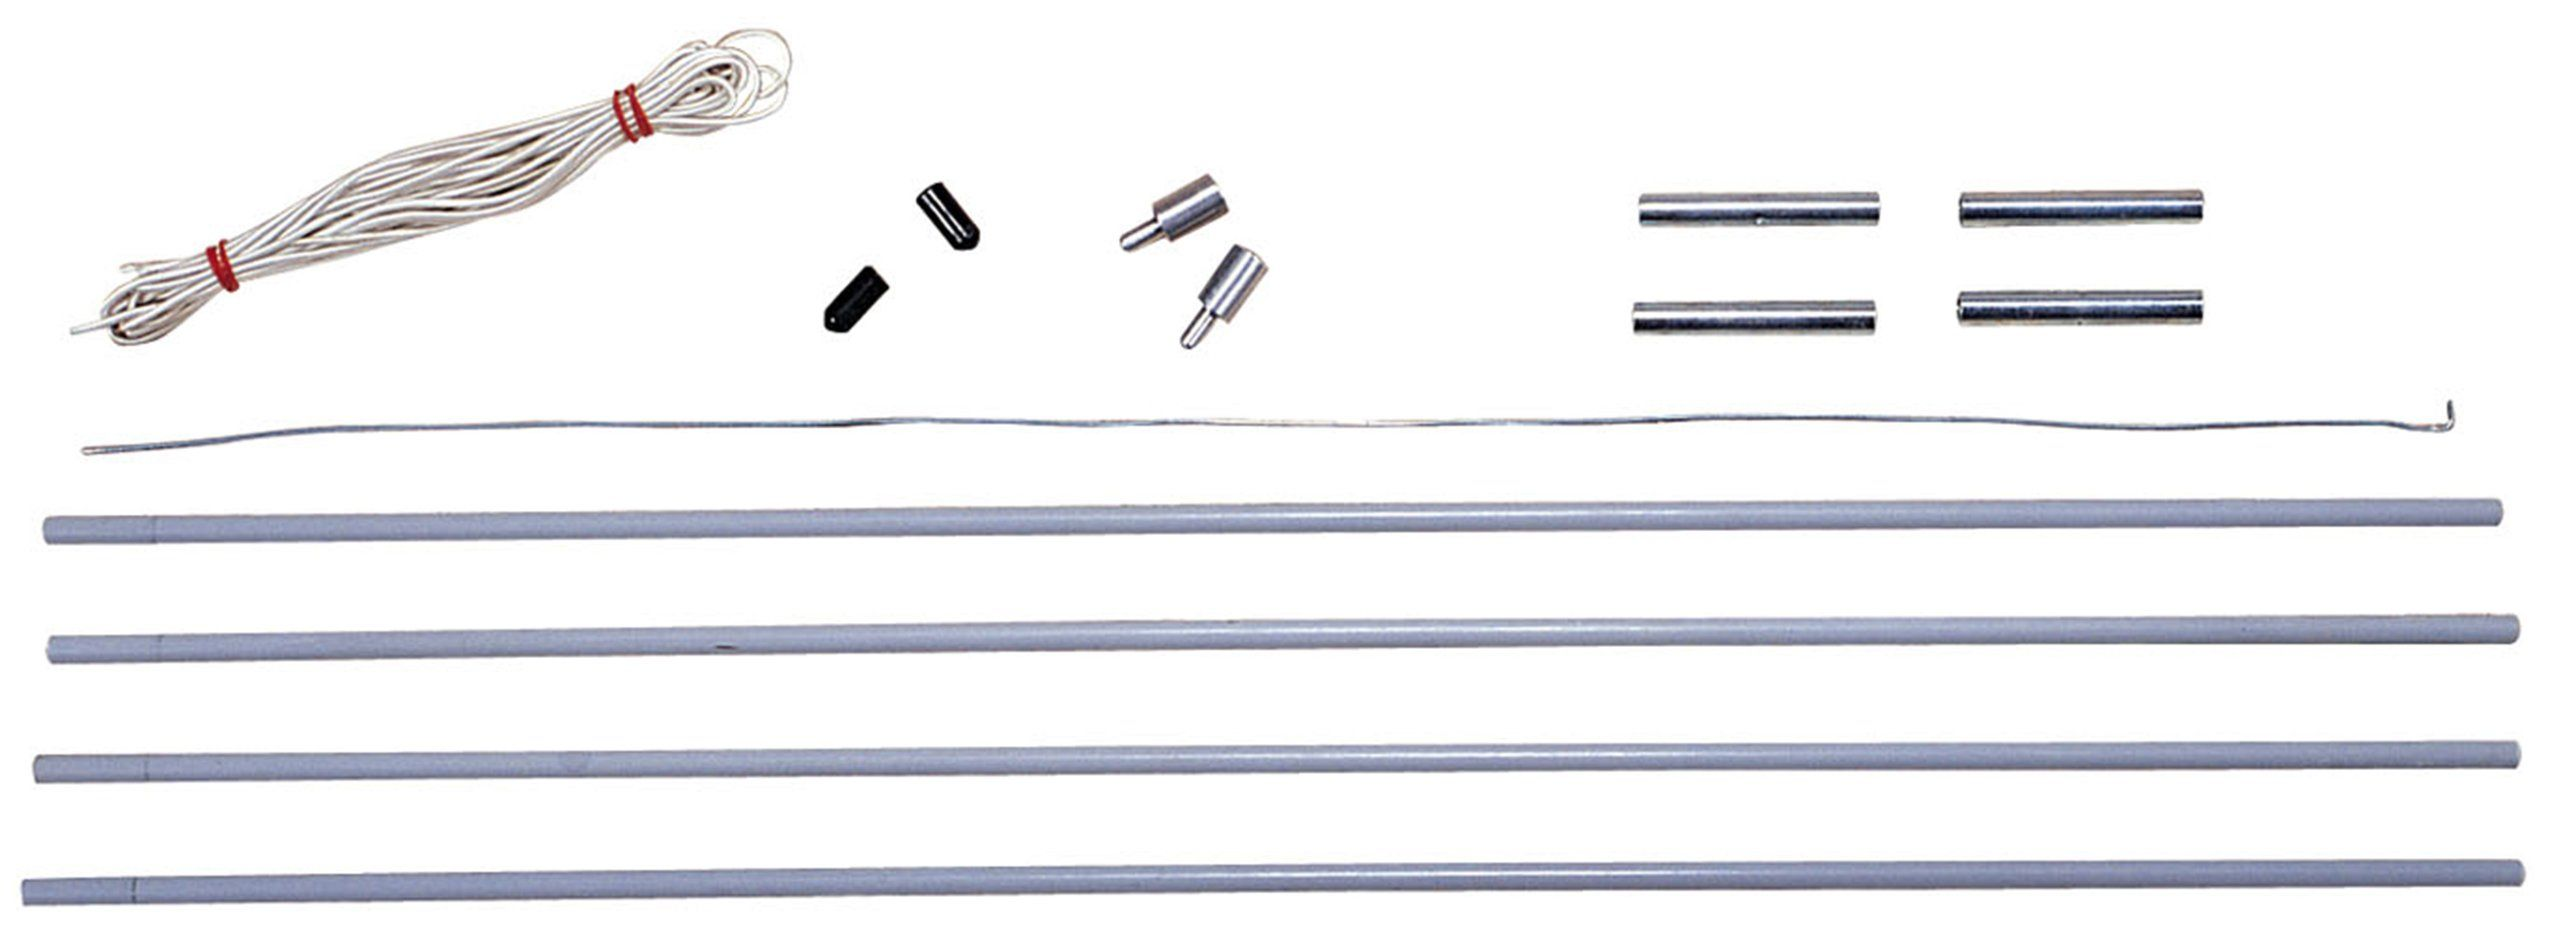 Stansport Pole Replacement Kit for Family Tents, 11mm. Includes shock cord. Installation wire. Stansport provides camping products that are best for your needs and can help to make your next camping trip the best yet. Four poles and ferrules. Fits most dome tents. Two pole styles.